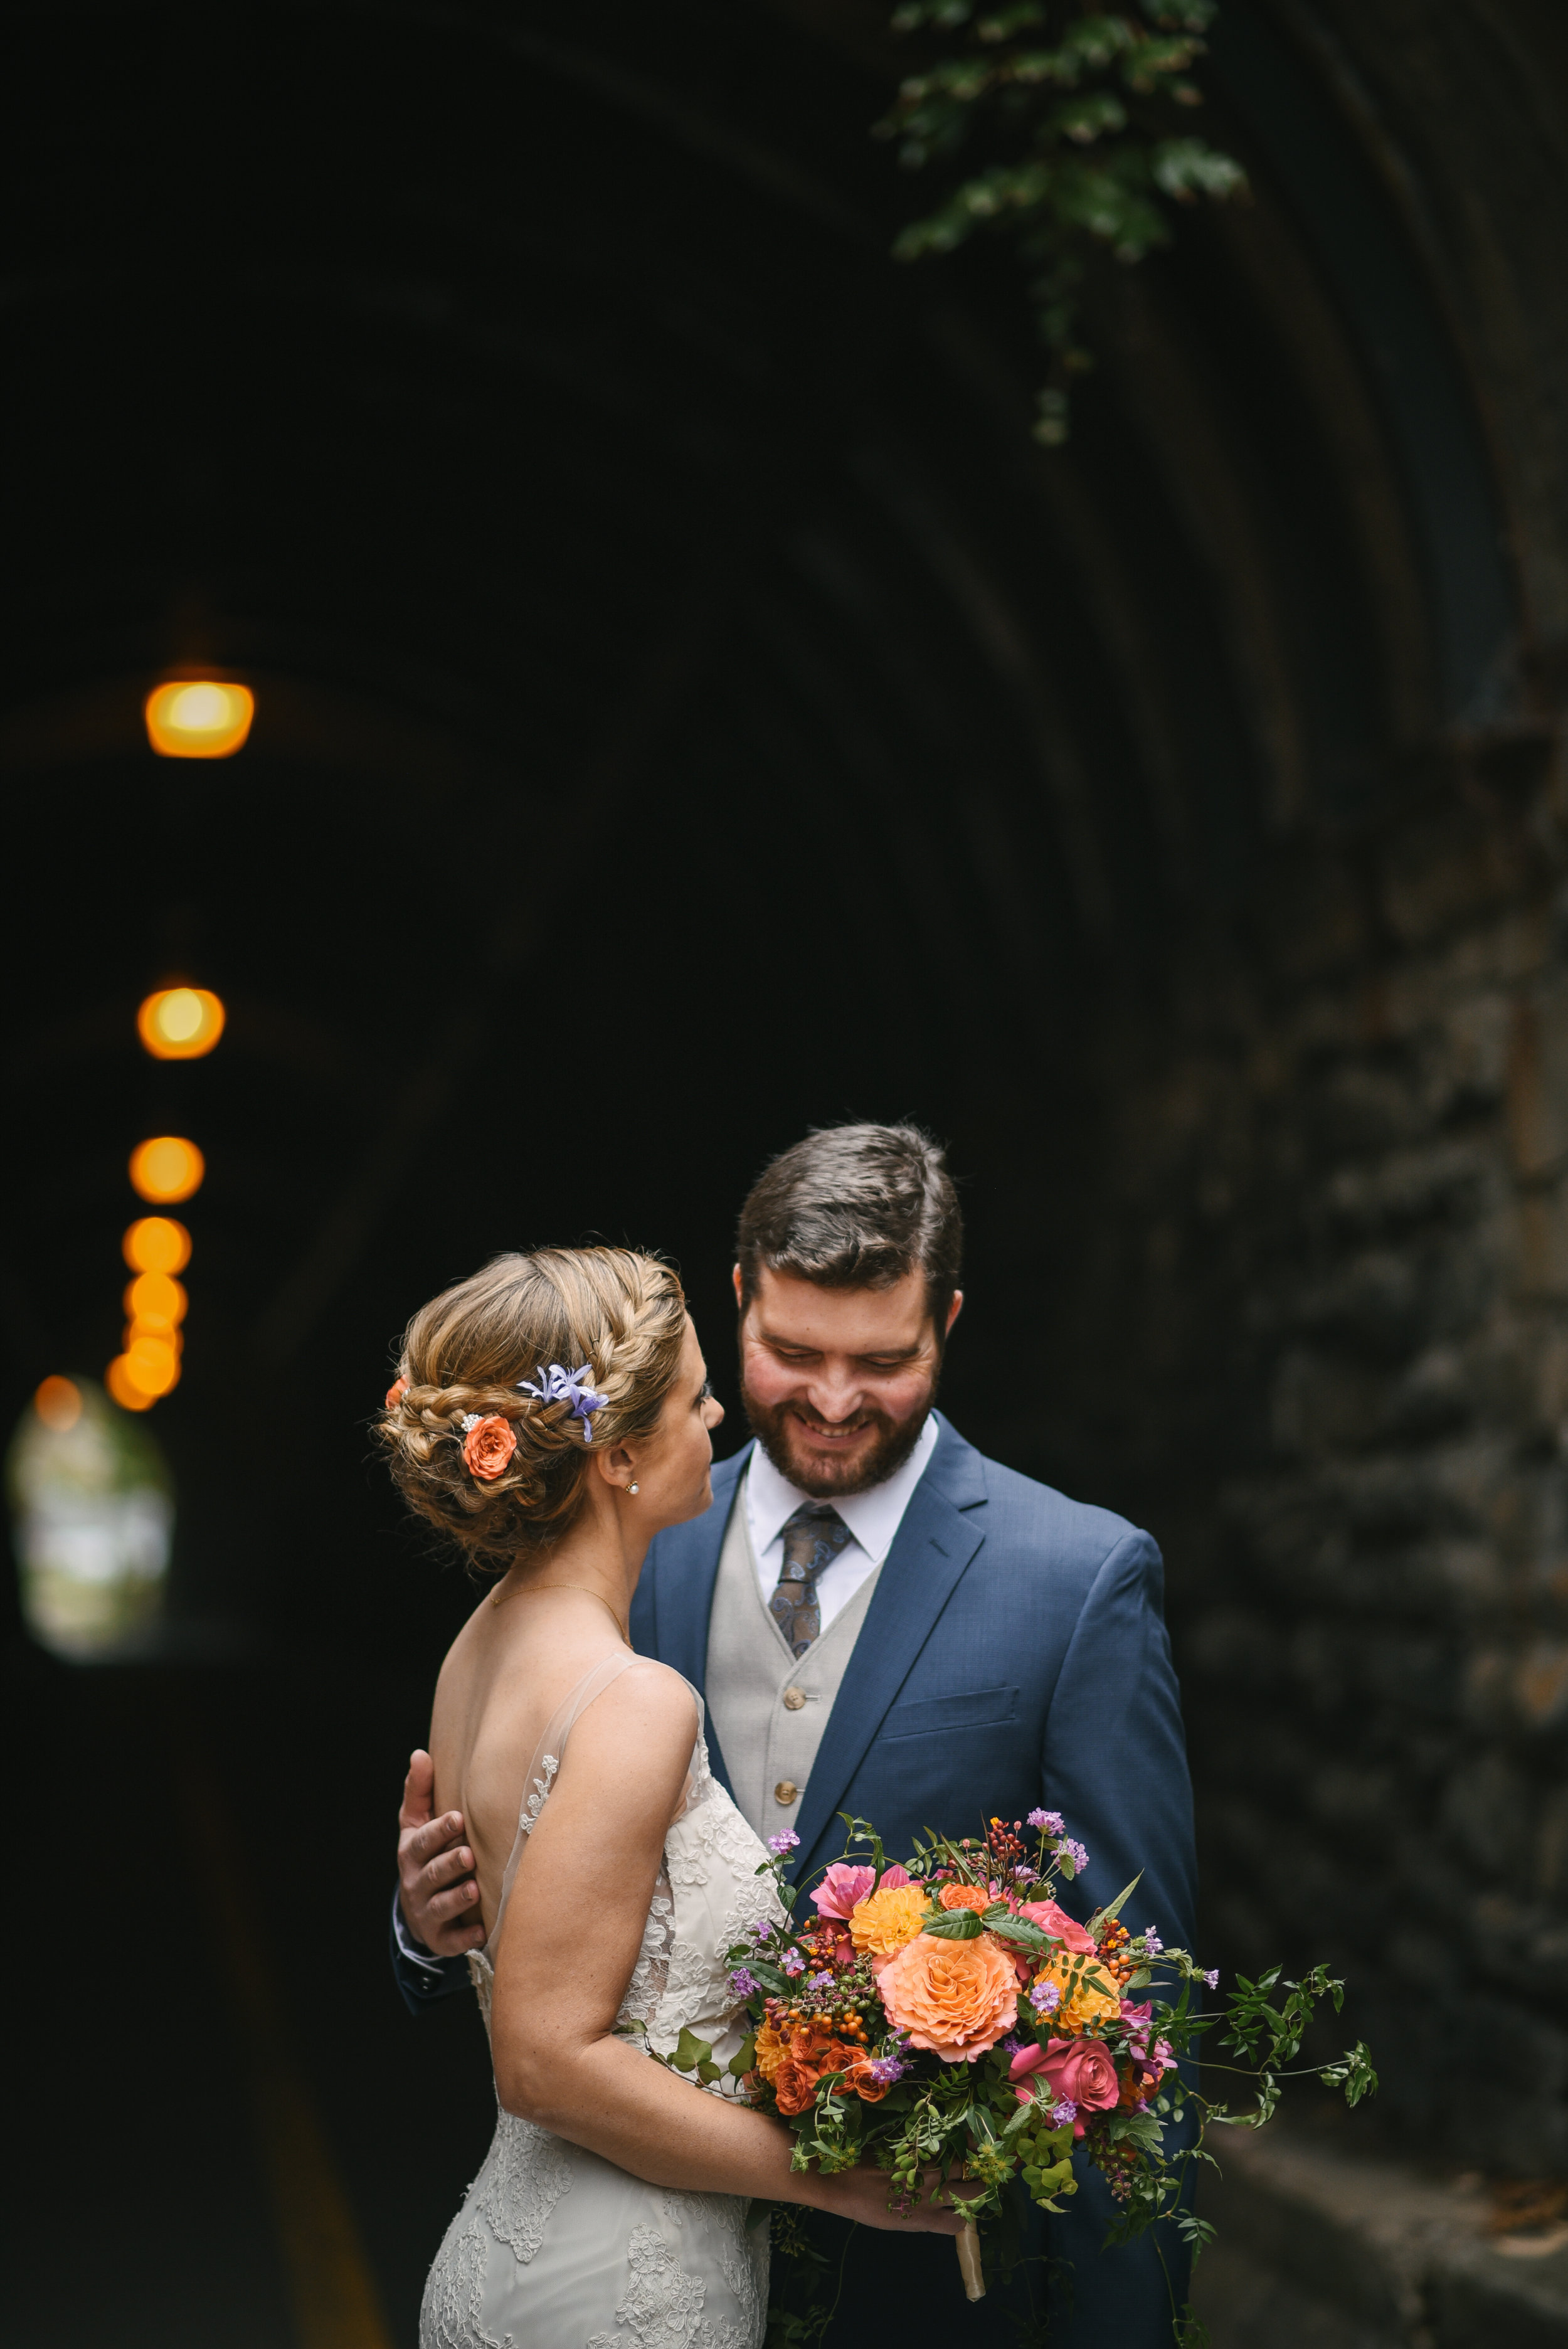 Alexandria, Virginia, Fall Wedding, Autumn, Historic Wedding, Old Town, DC, Wilkes Street Tunnel, Romantic, Lian Carlo Wedding Dress, Secluded Moments, The Enchanted Florist Bouquet